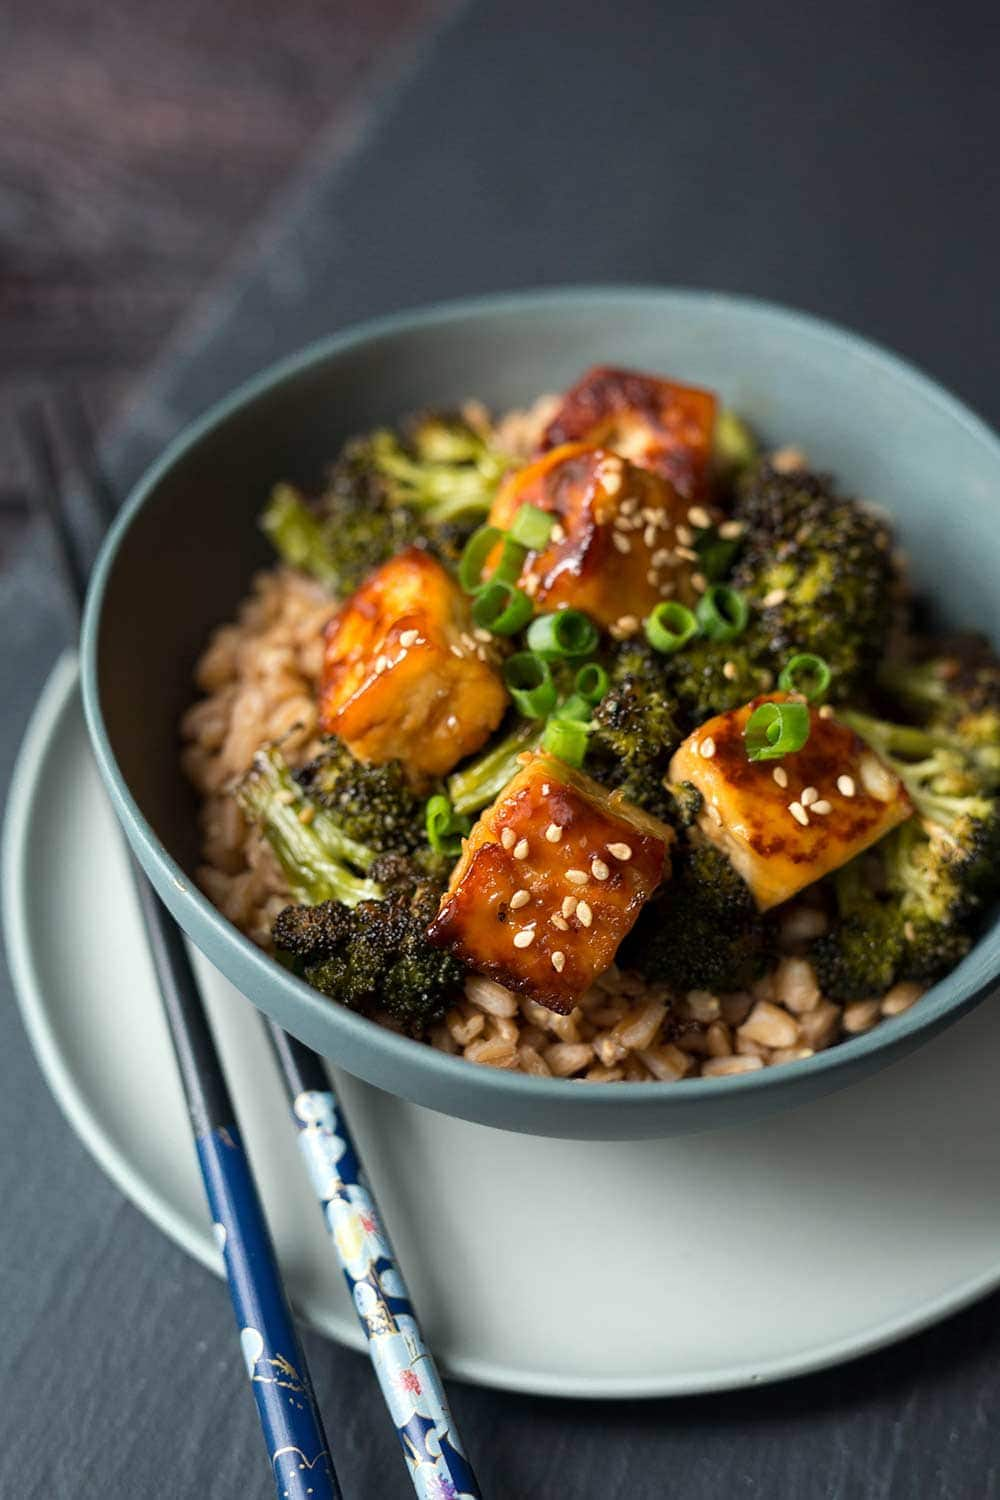 This delicious Weight Watchers-friendly recipe sweet and spicy Asian tofu is a fast and satisfying lunch or dinner.